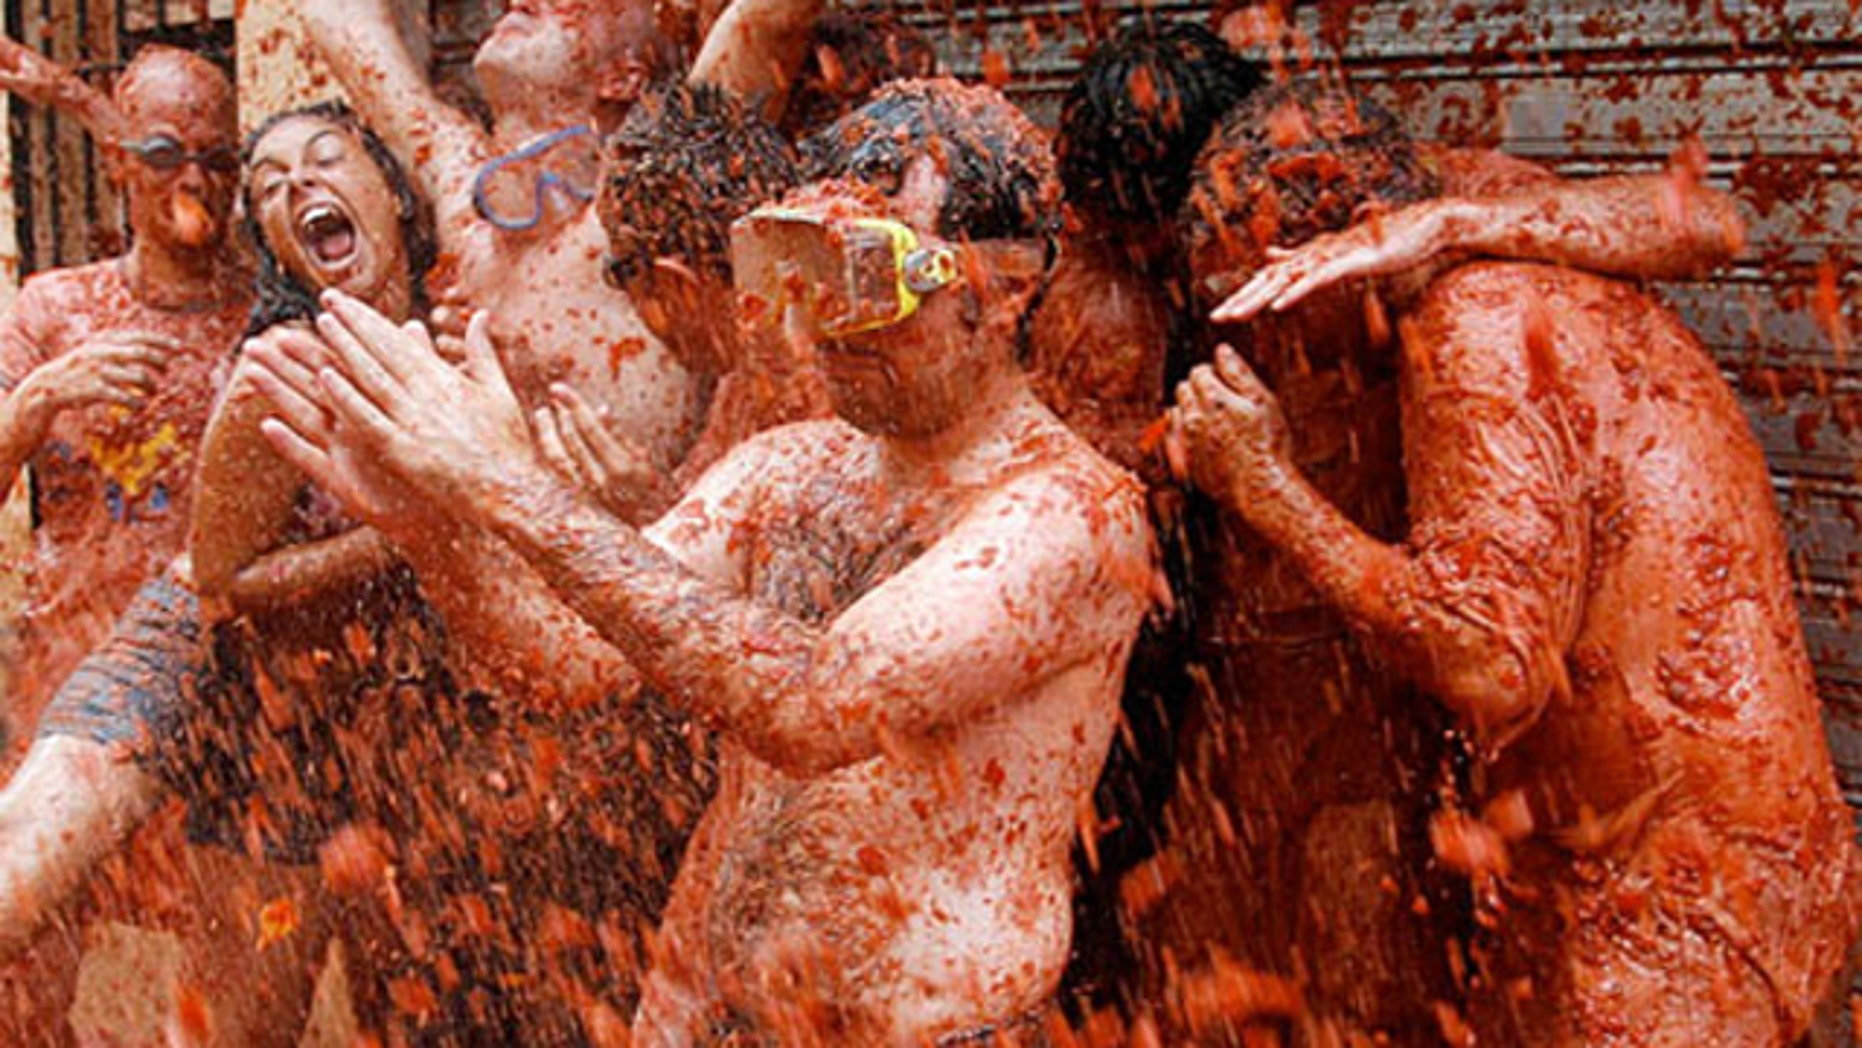 The famous La Tomatina festival is the epic tomato-launching battle ensues until 100 tons of tomato guts covers the Spanish  town.